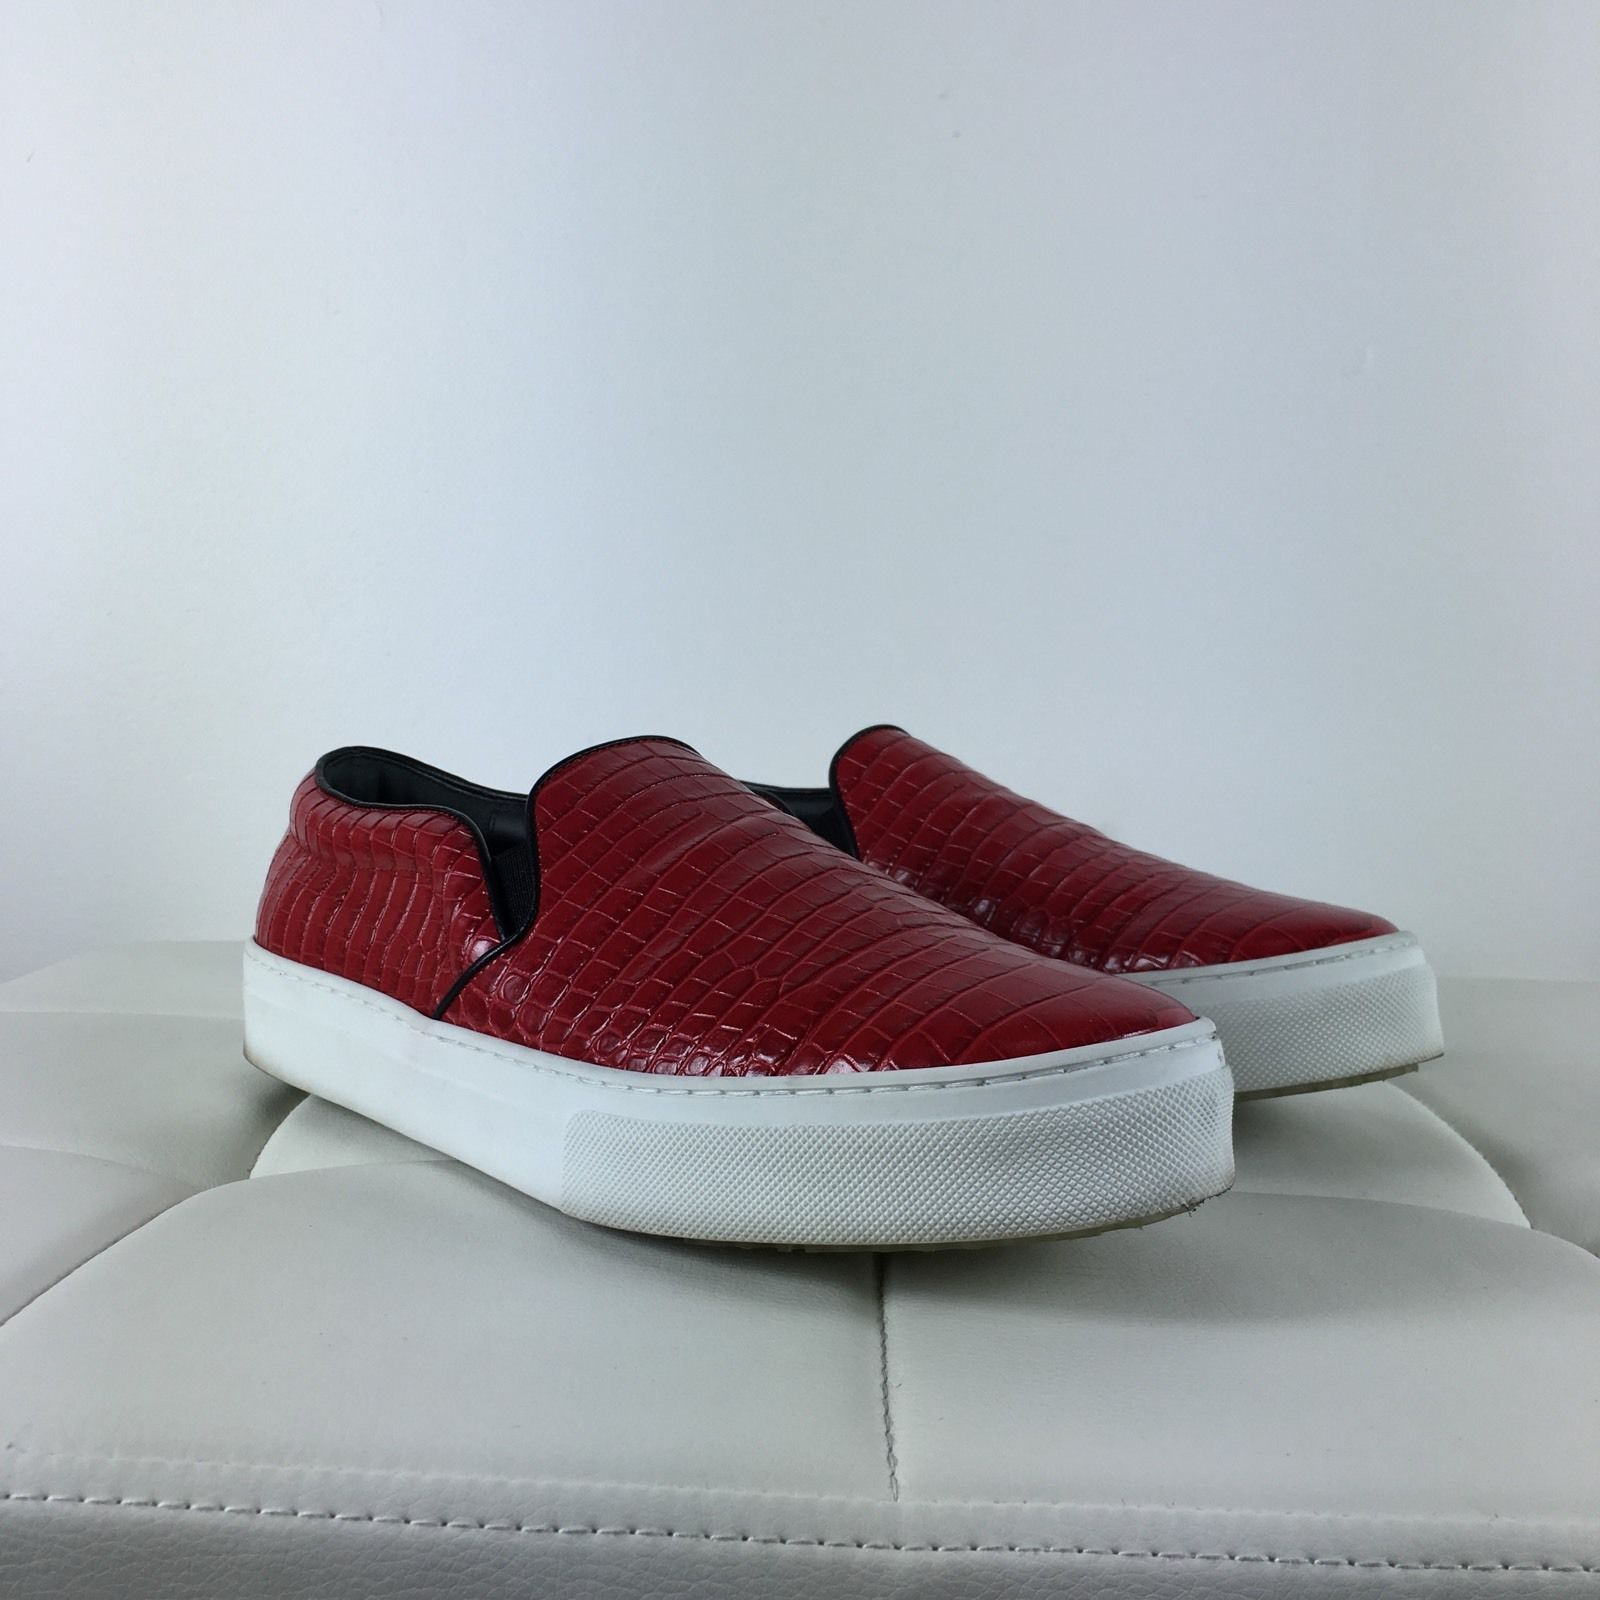 PRE-OWNED - Celine Slip-On Sneaker Bright Red Red Red Leather - EU 42 82f77d